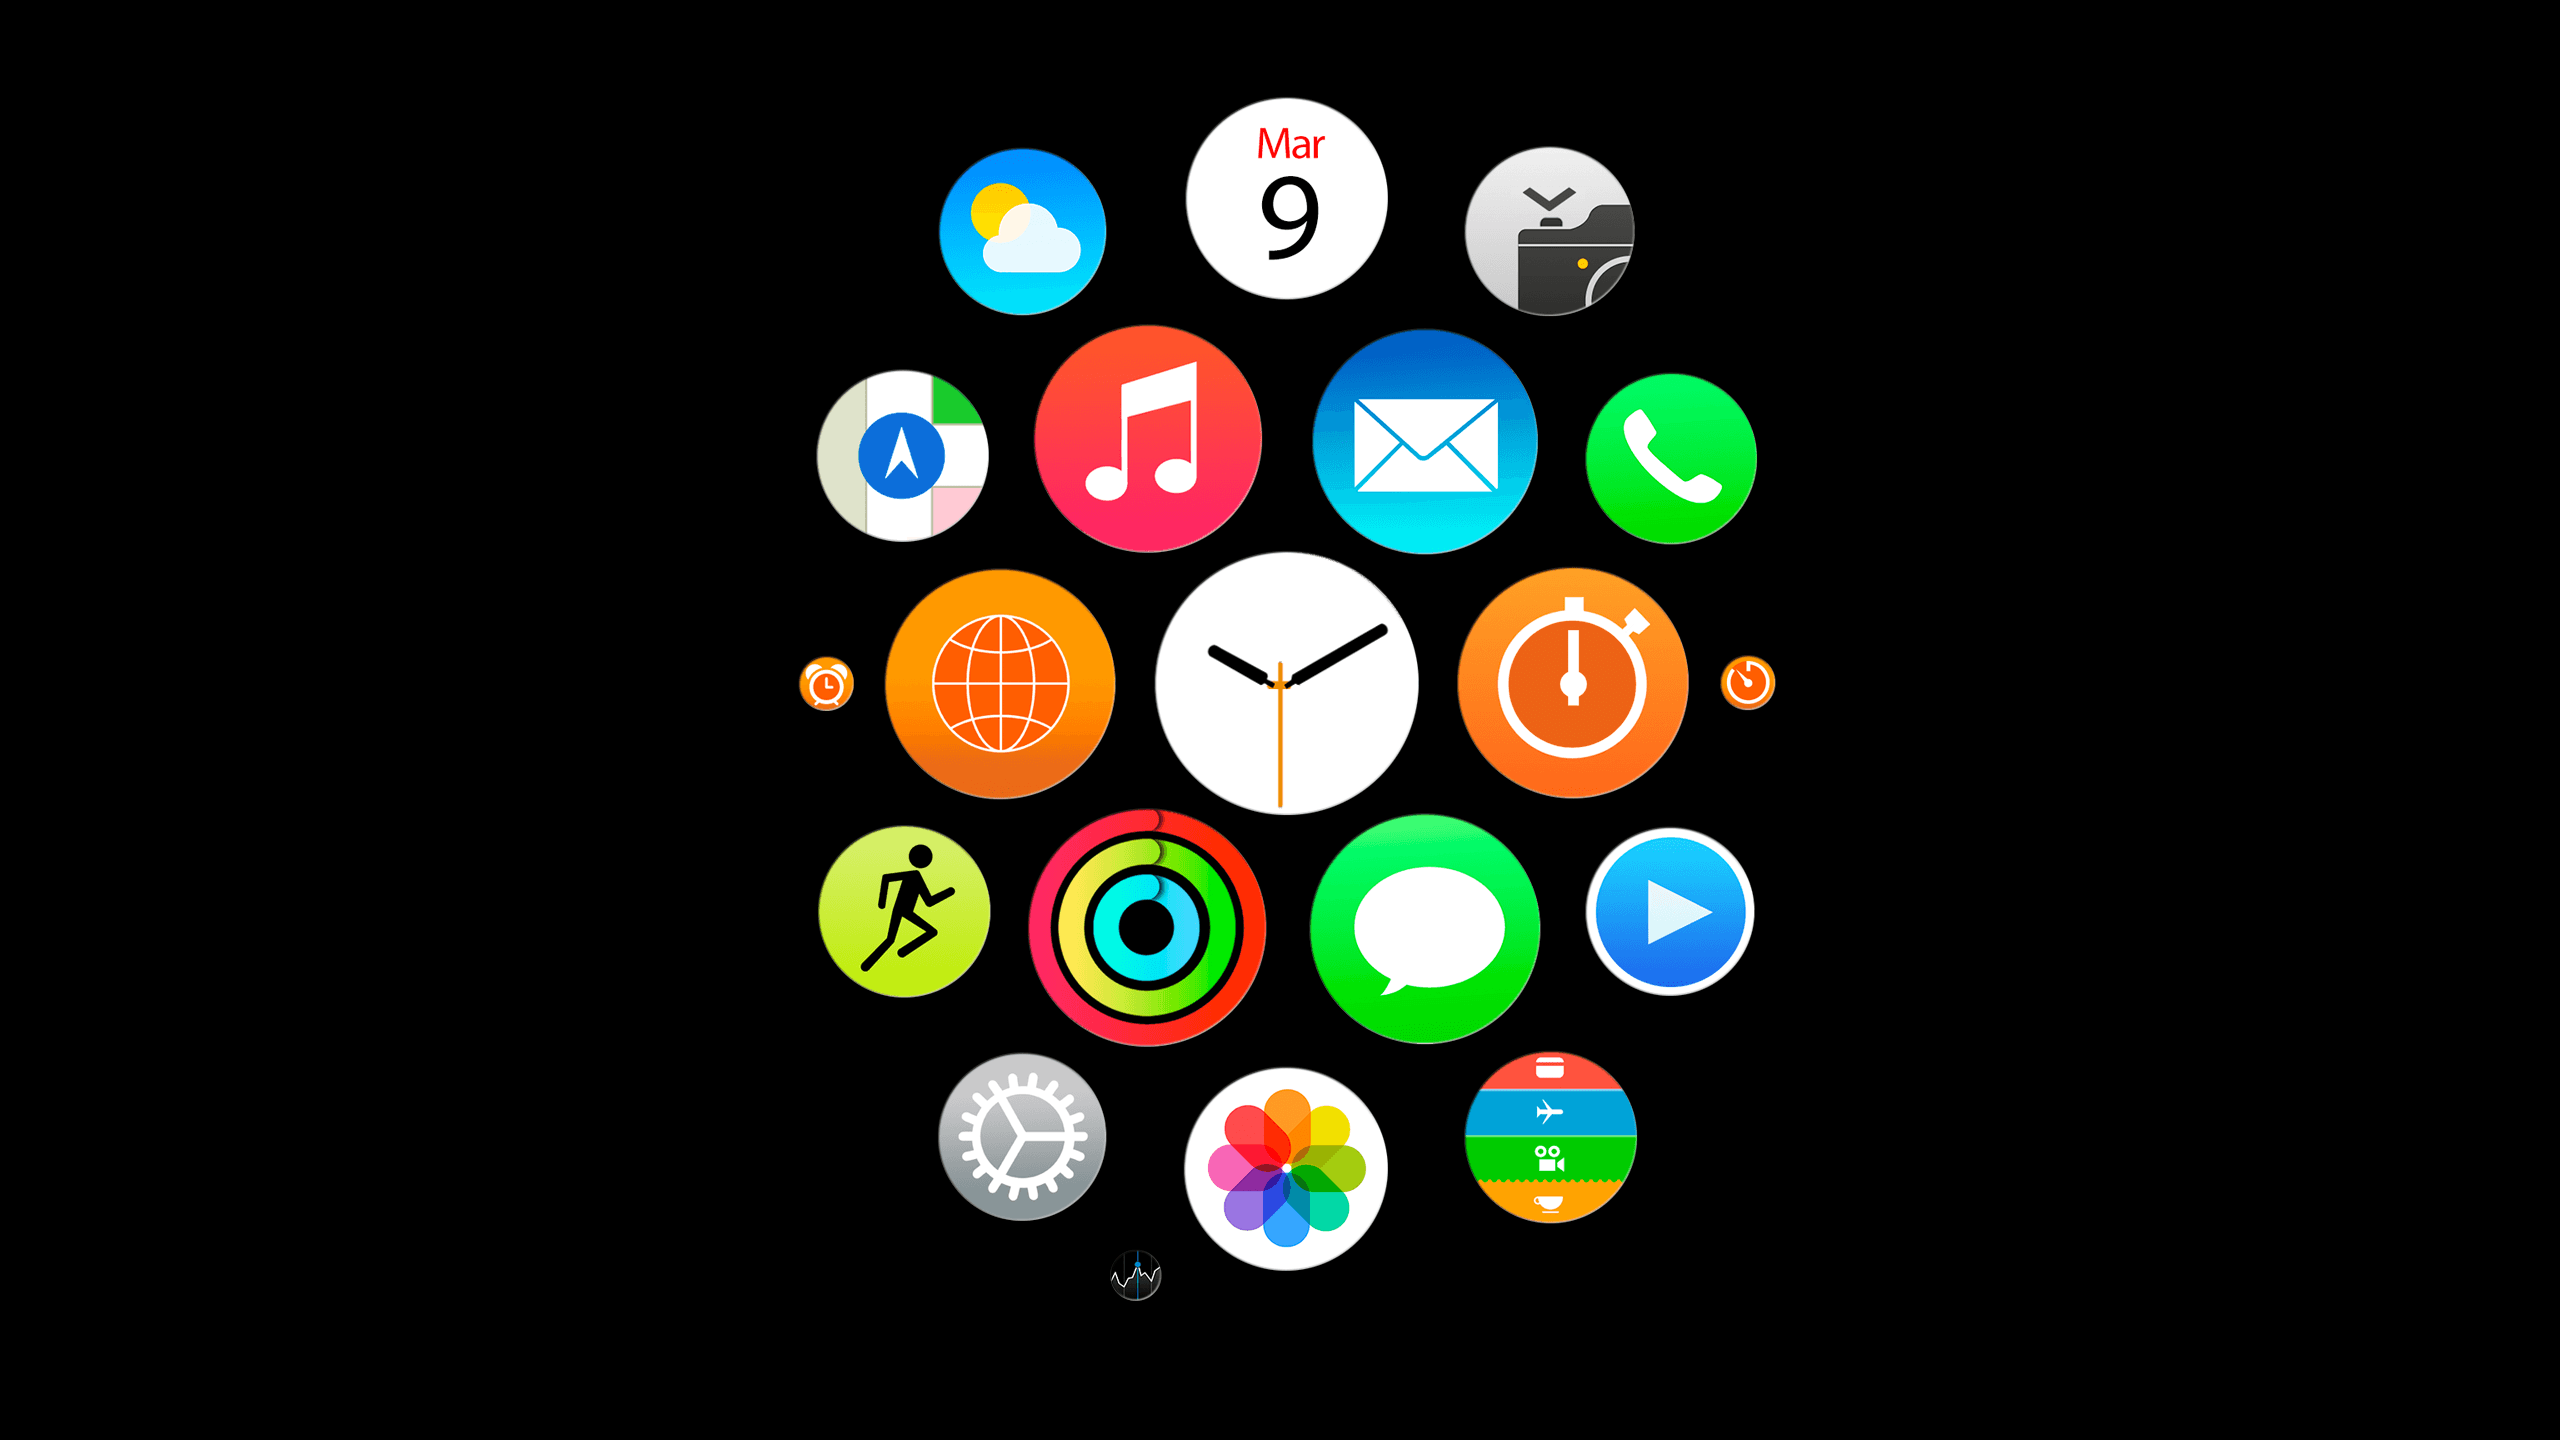 Apple Watch app icons wallpapers for iPhone, iPad, and desktop